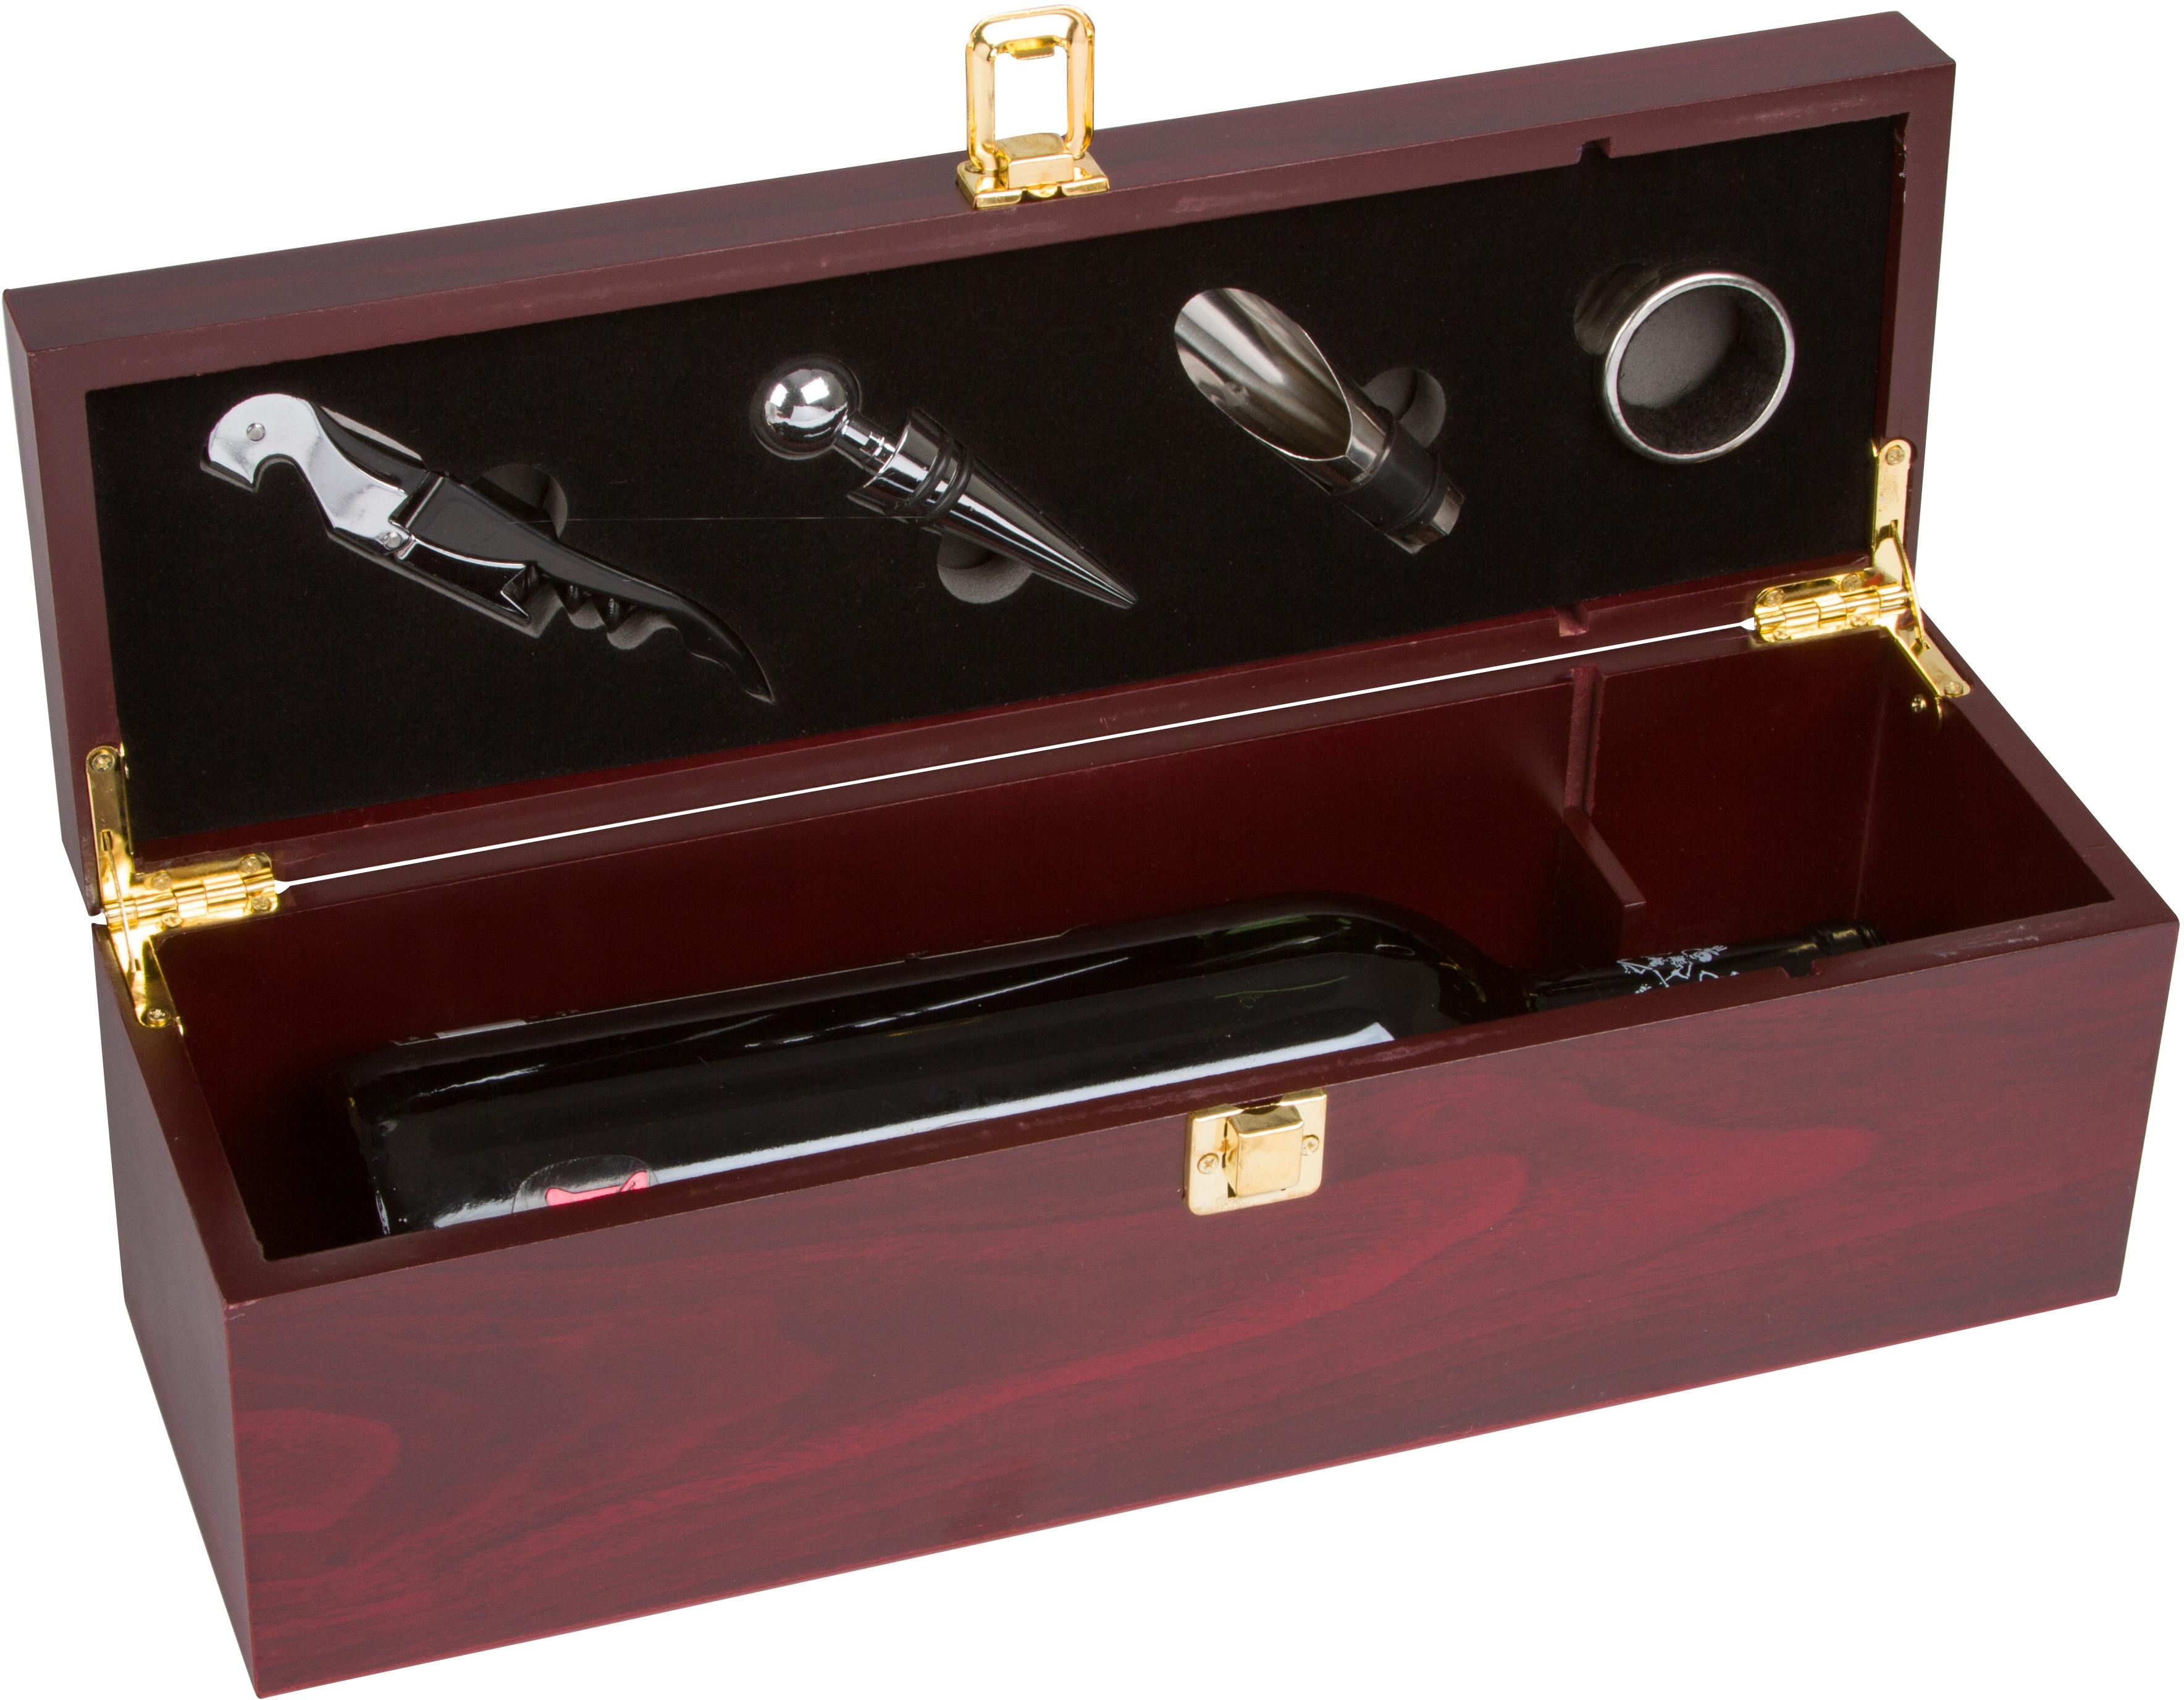 Trademark innovations treasure chest wine box wooden for 1 bottle view larger publicscrutiny Image collections